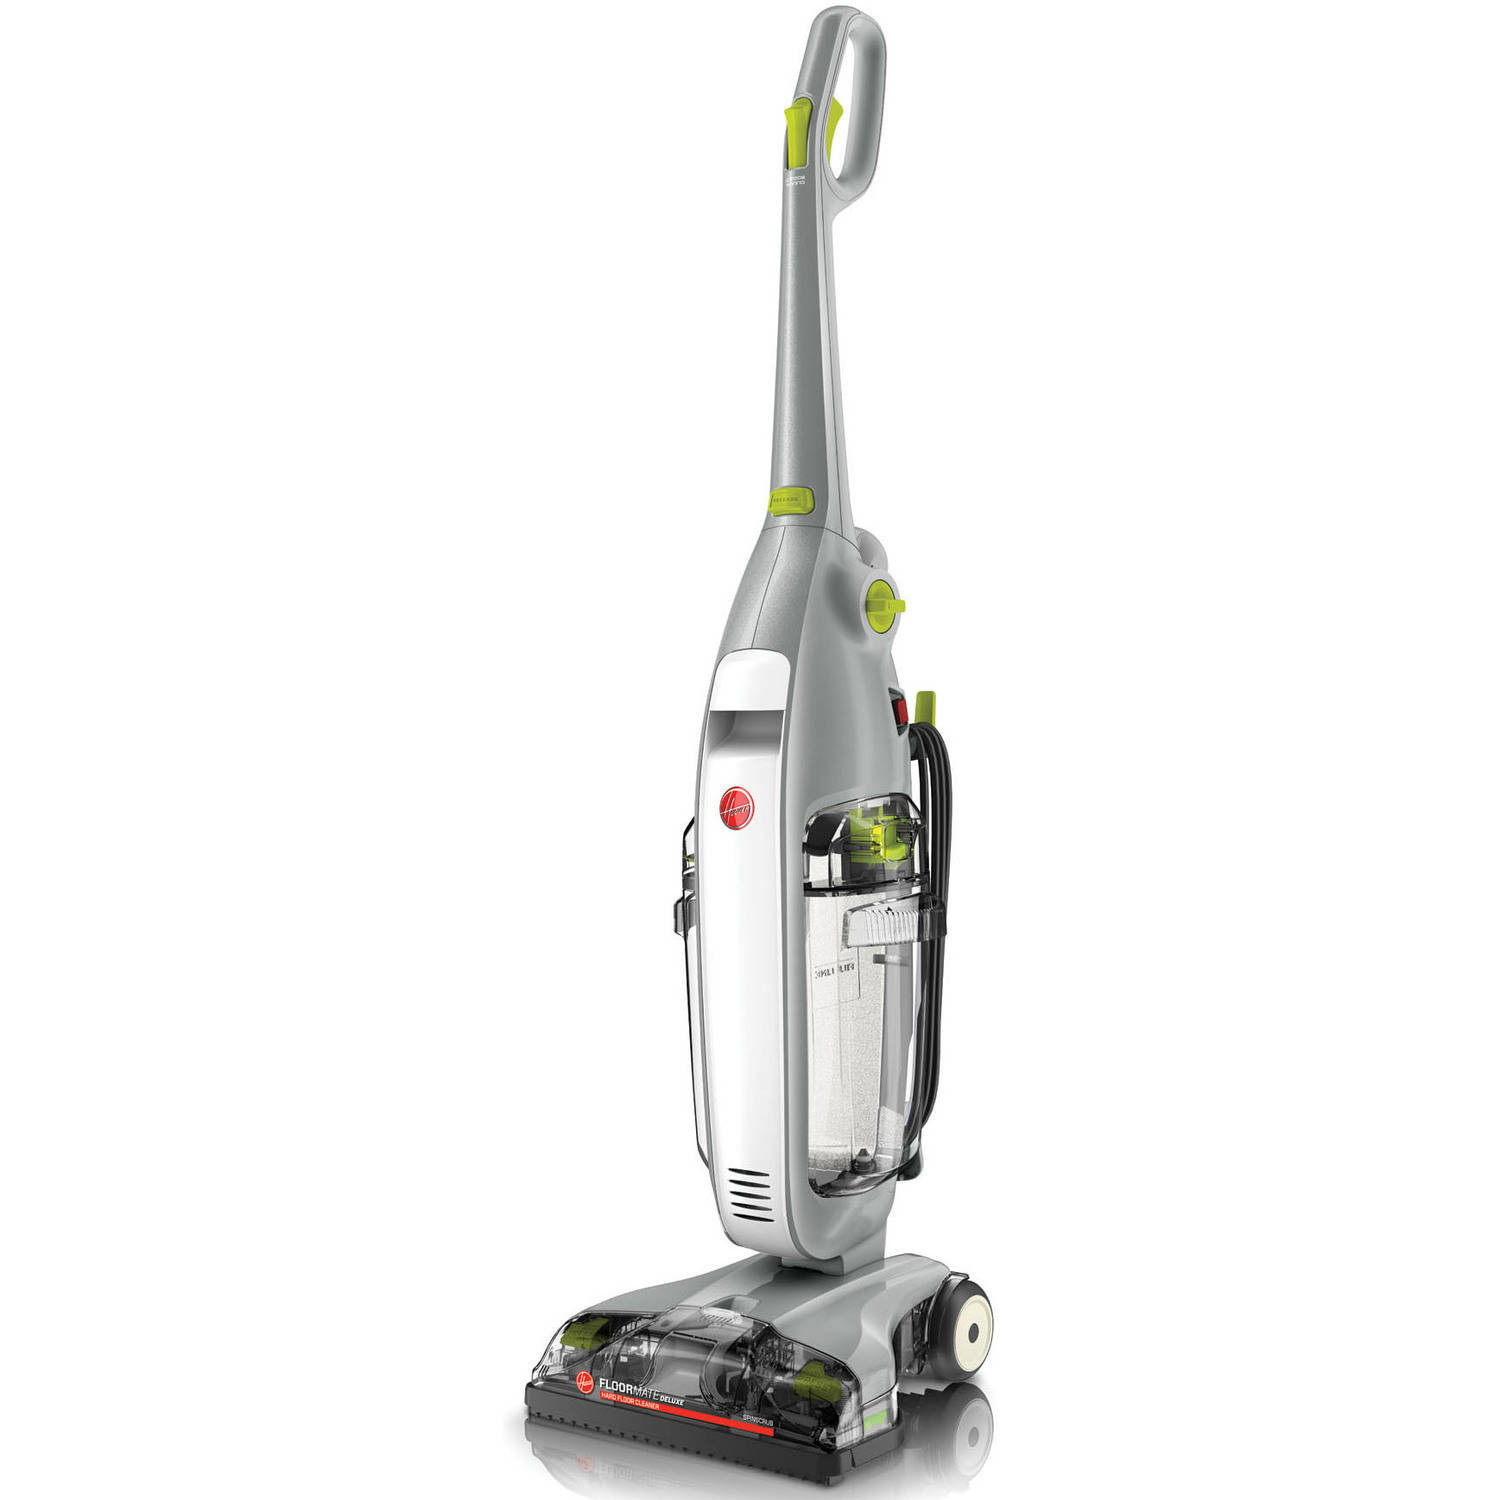 shark hardwood floor cleaner machine of wood flooring engineered hardwood flooring mannington floors for hoover floormate deluxe hard floor cleaner fh40165 walmart com hoover hardwood floor cleaner instructions